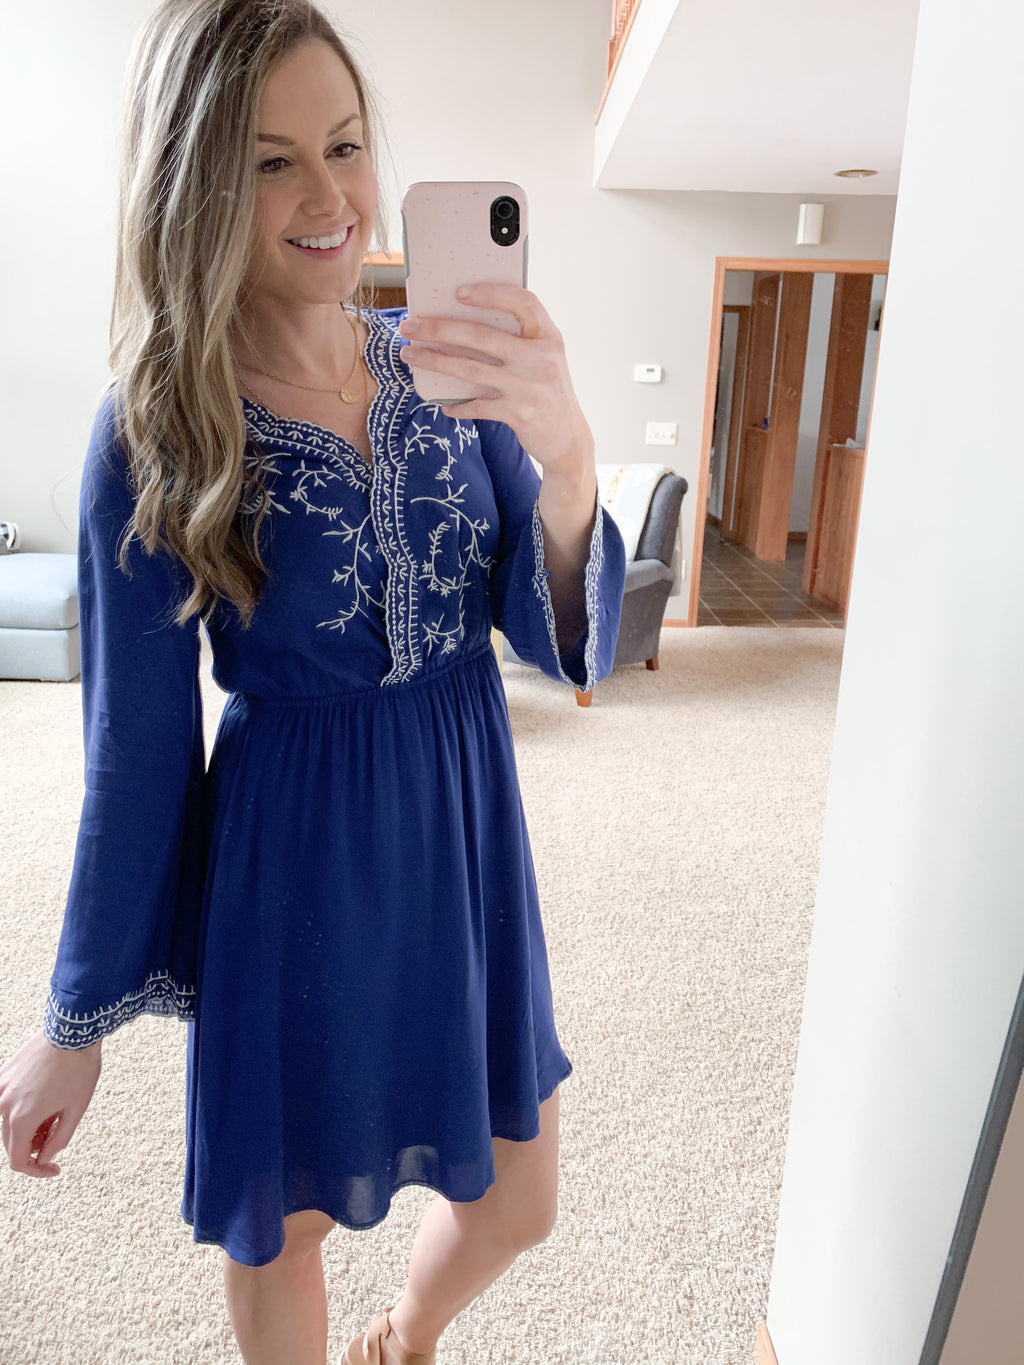 The Chloe Embroidered Dress